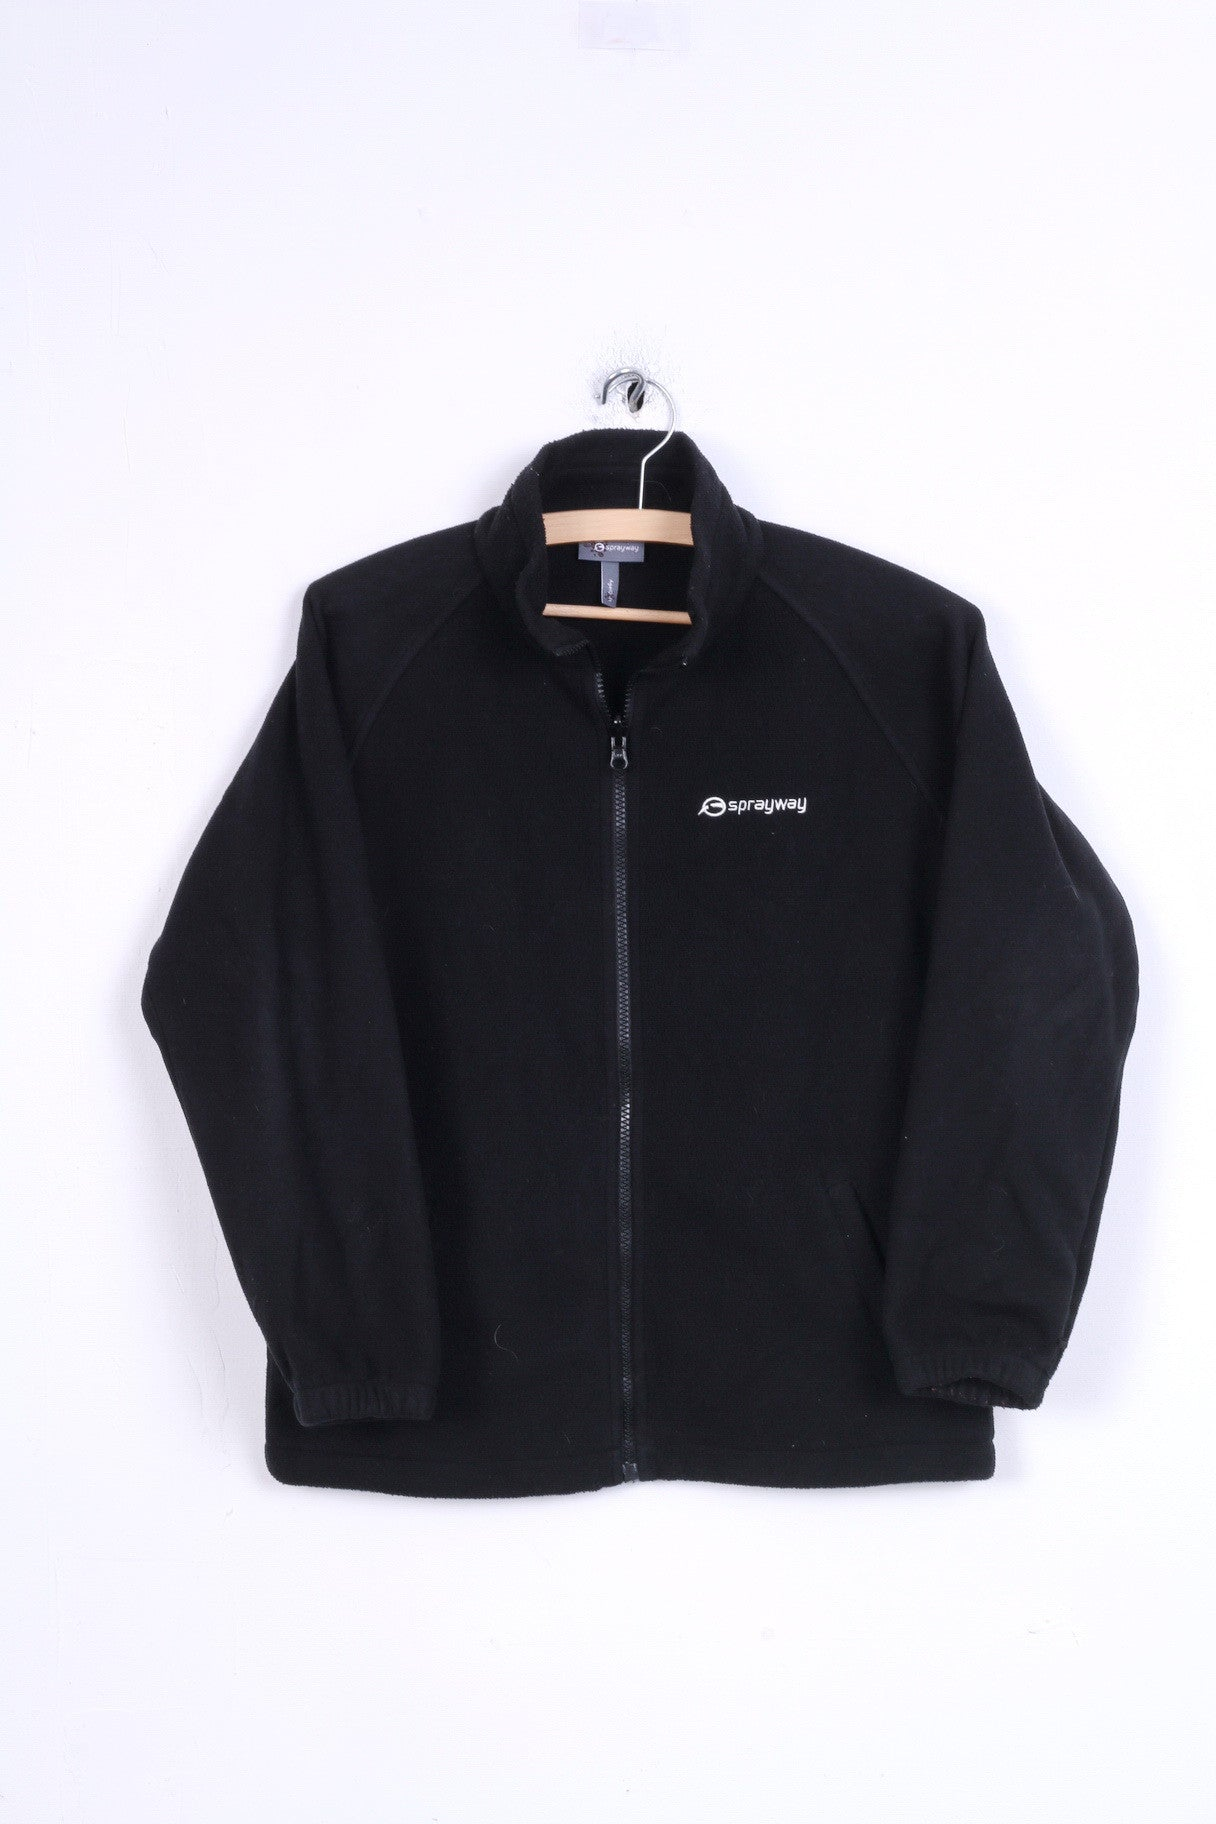 outlet store best quality on feet shots of Sprayway Girls 10-11 age Fleece Black Top Zip Up jacket ...